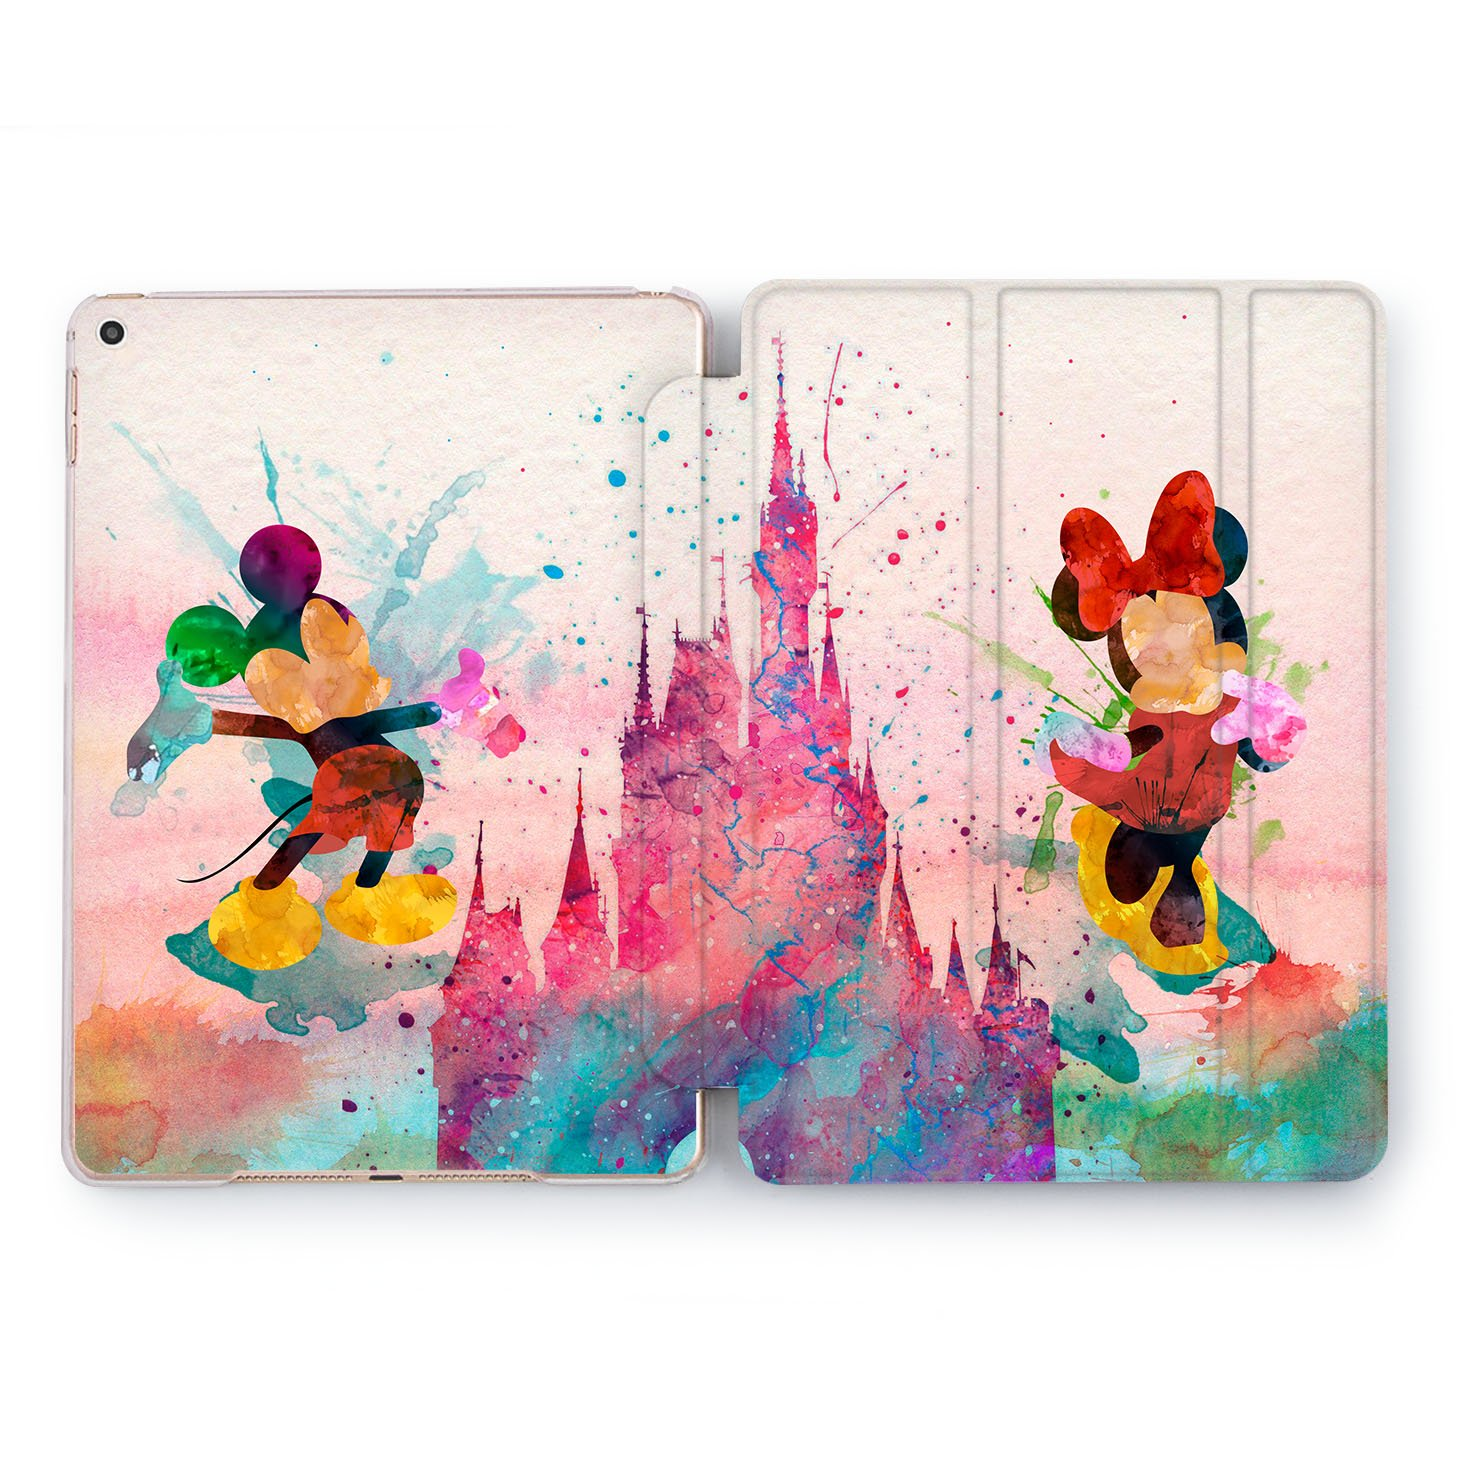 Wonder Wild Hard Shell Case iPad Mini 1 2 3 4 Air 2 Watercolor Tablet Cover Pro 10.5 12.9 2018 2017 9.7 inch 5th 6th Generation Cartoon Walt Disney Mickey Minne Mouse Fairy Tale Magic Design Colorful